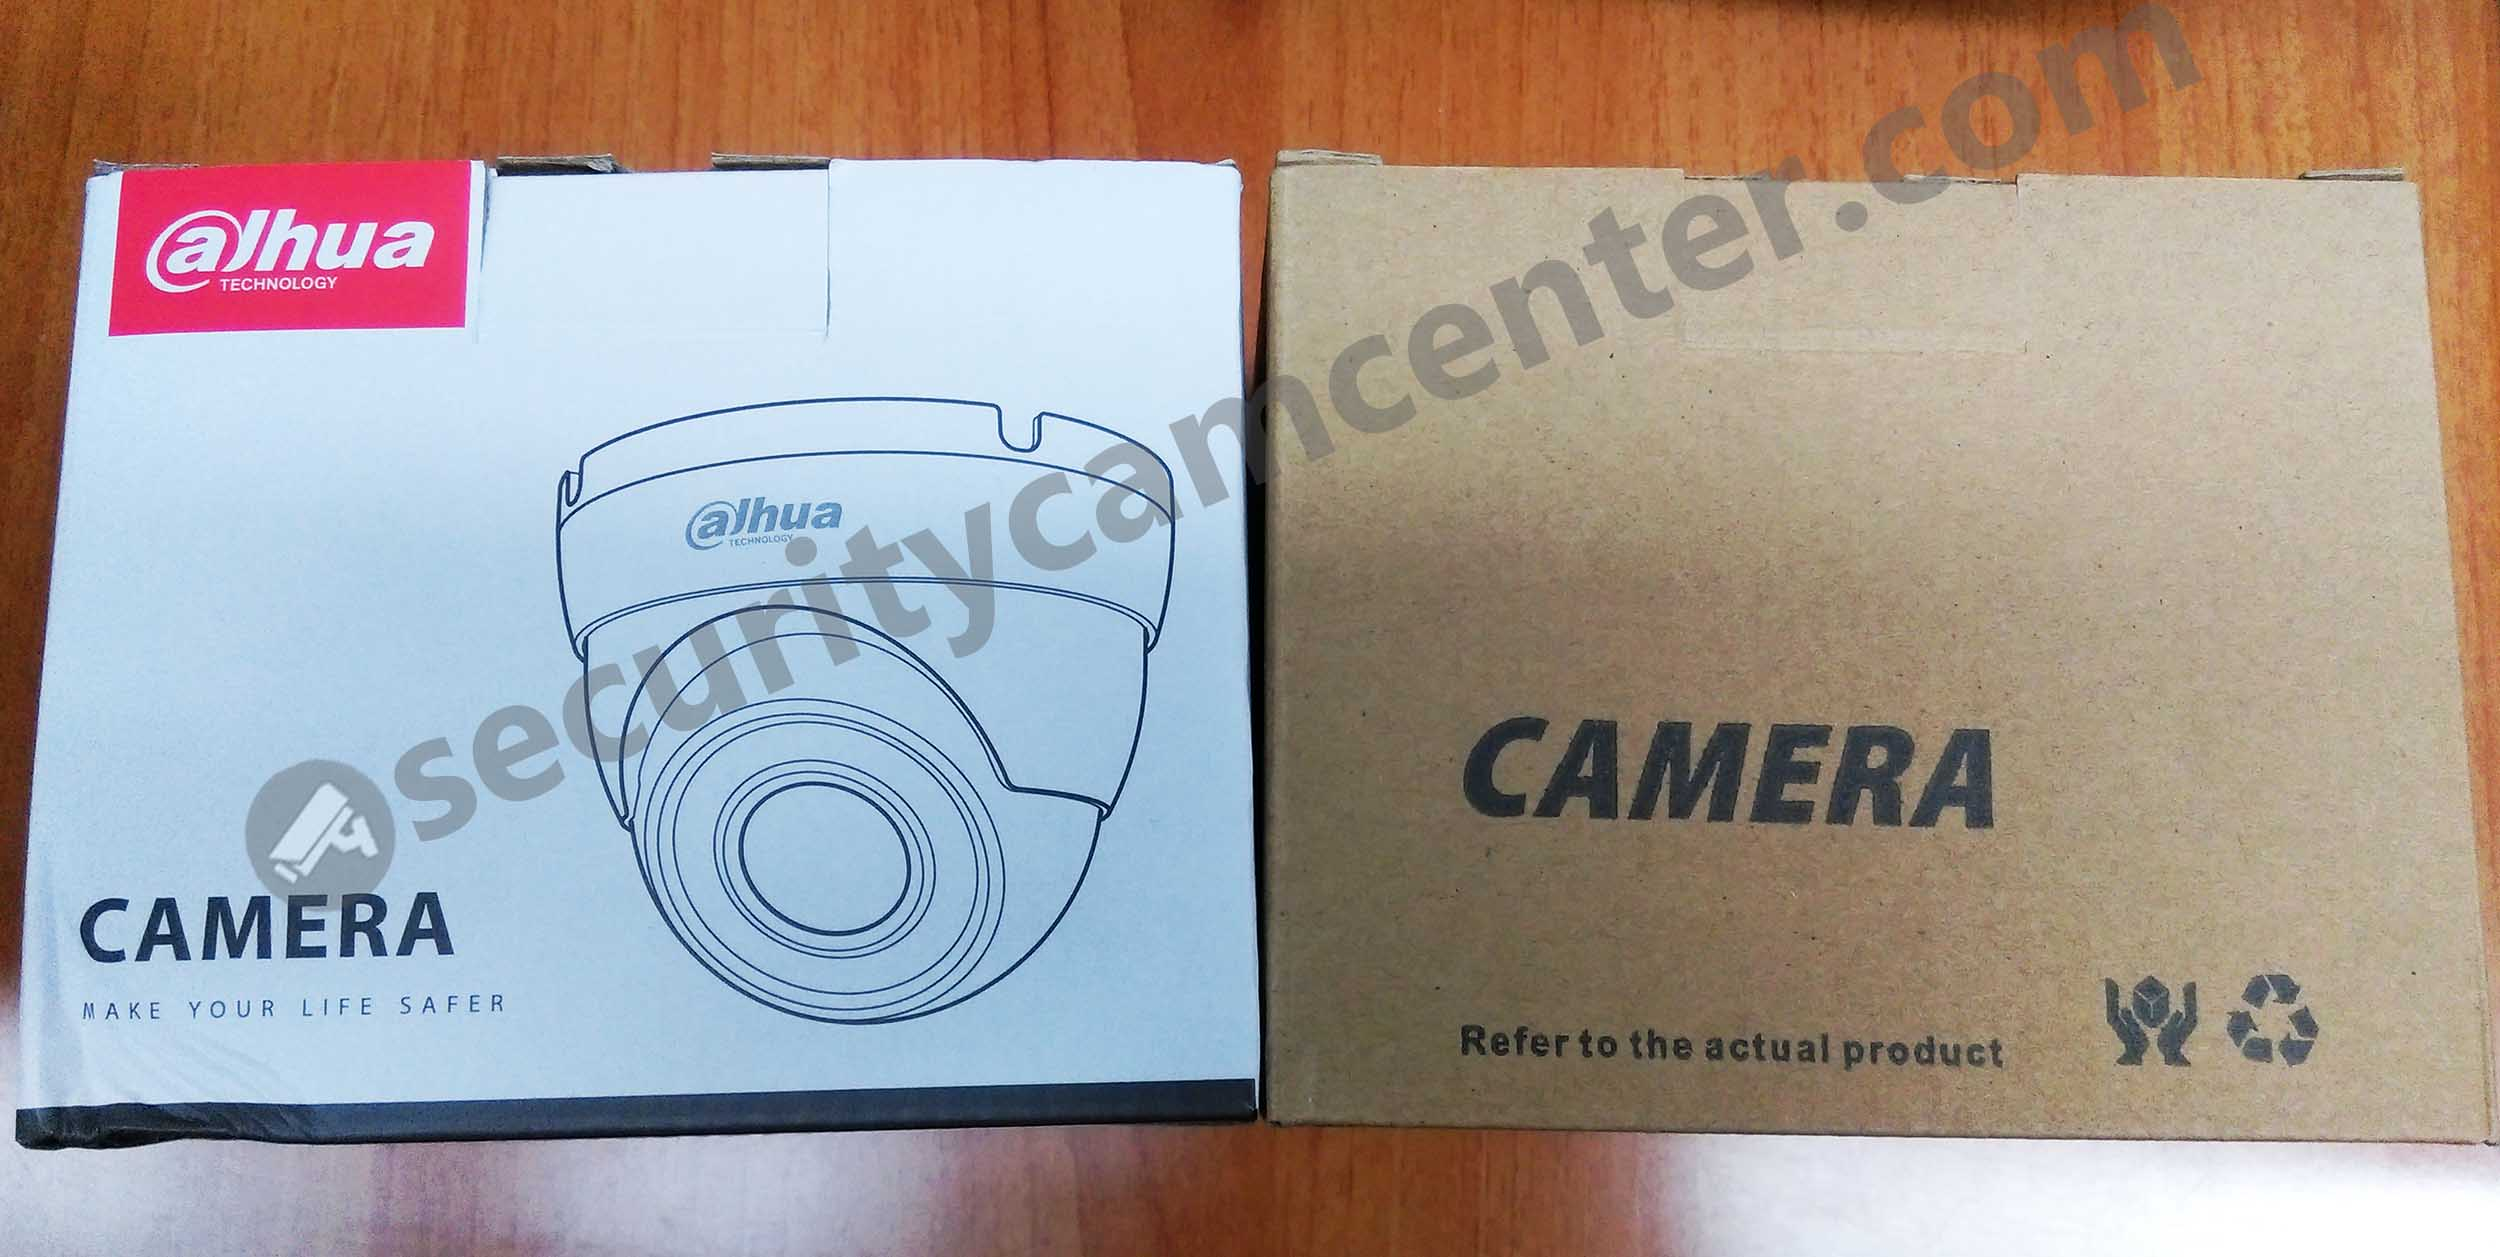 The logo version on the right and the OEM version on the left. Basically the same cameras.